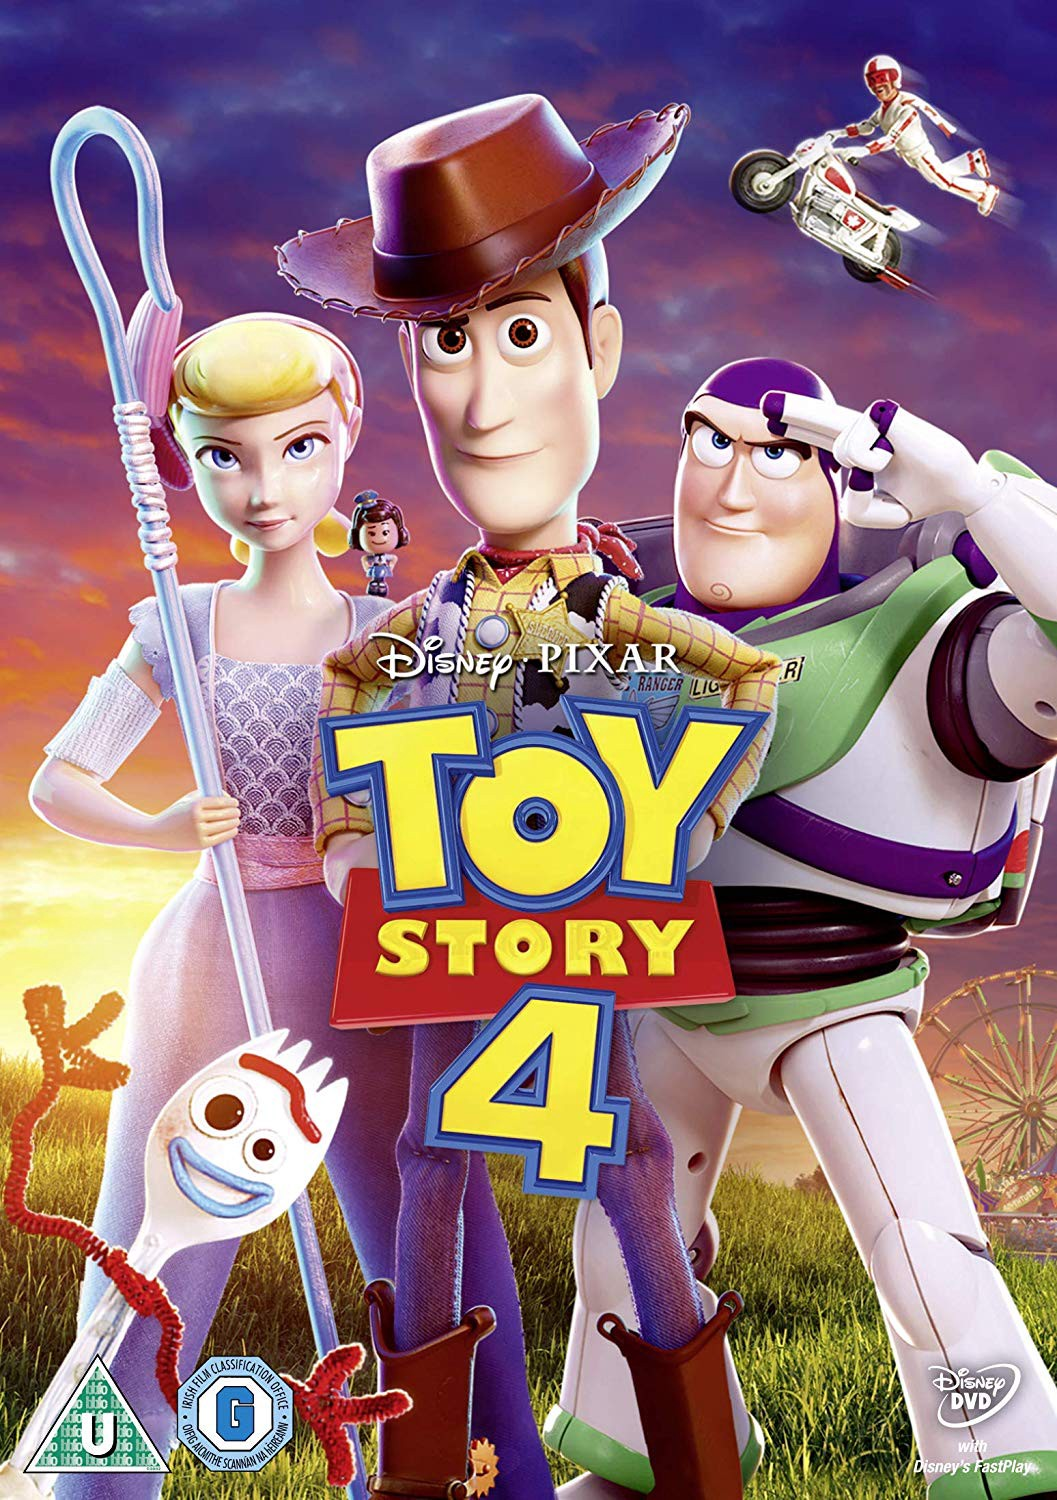 Toy Story 2 Themes - Download